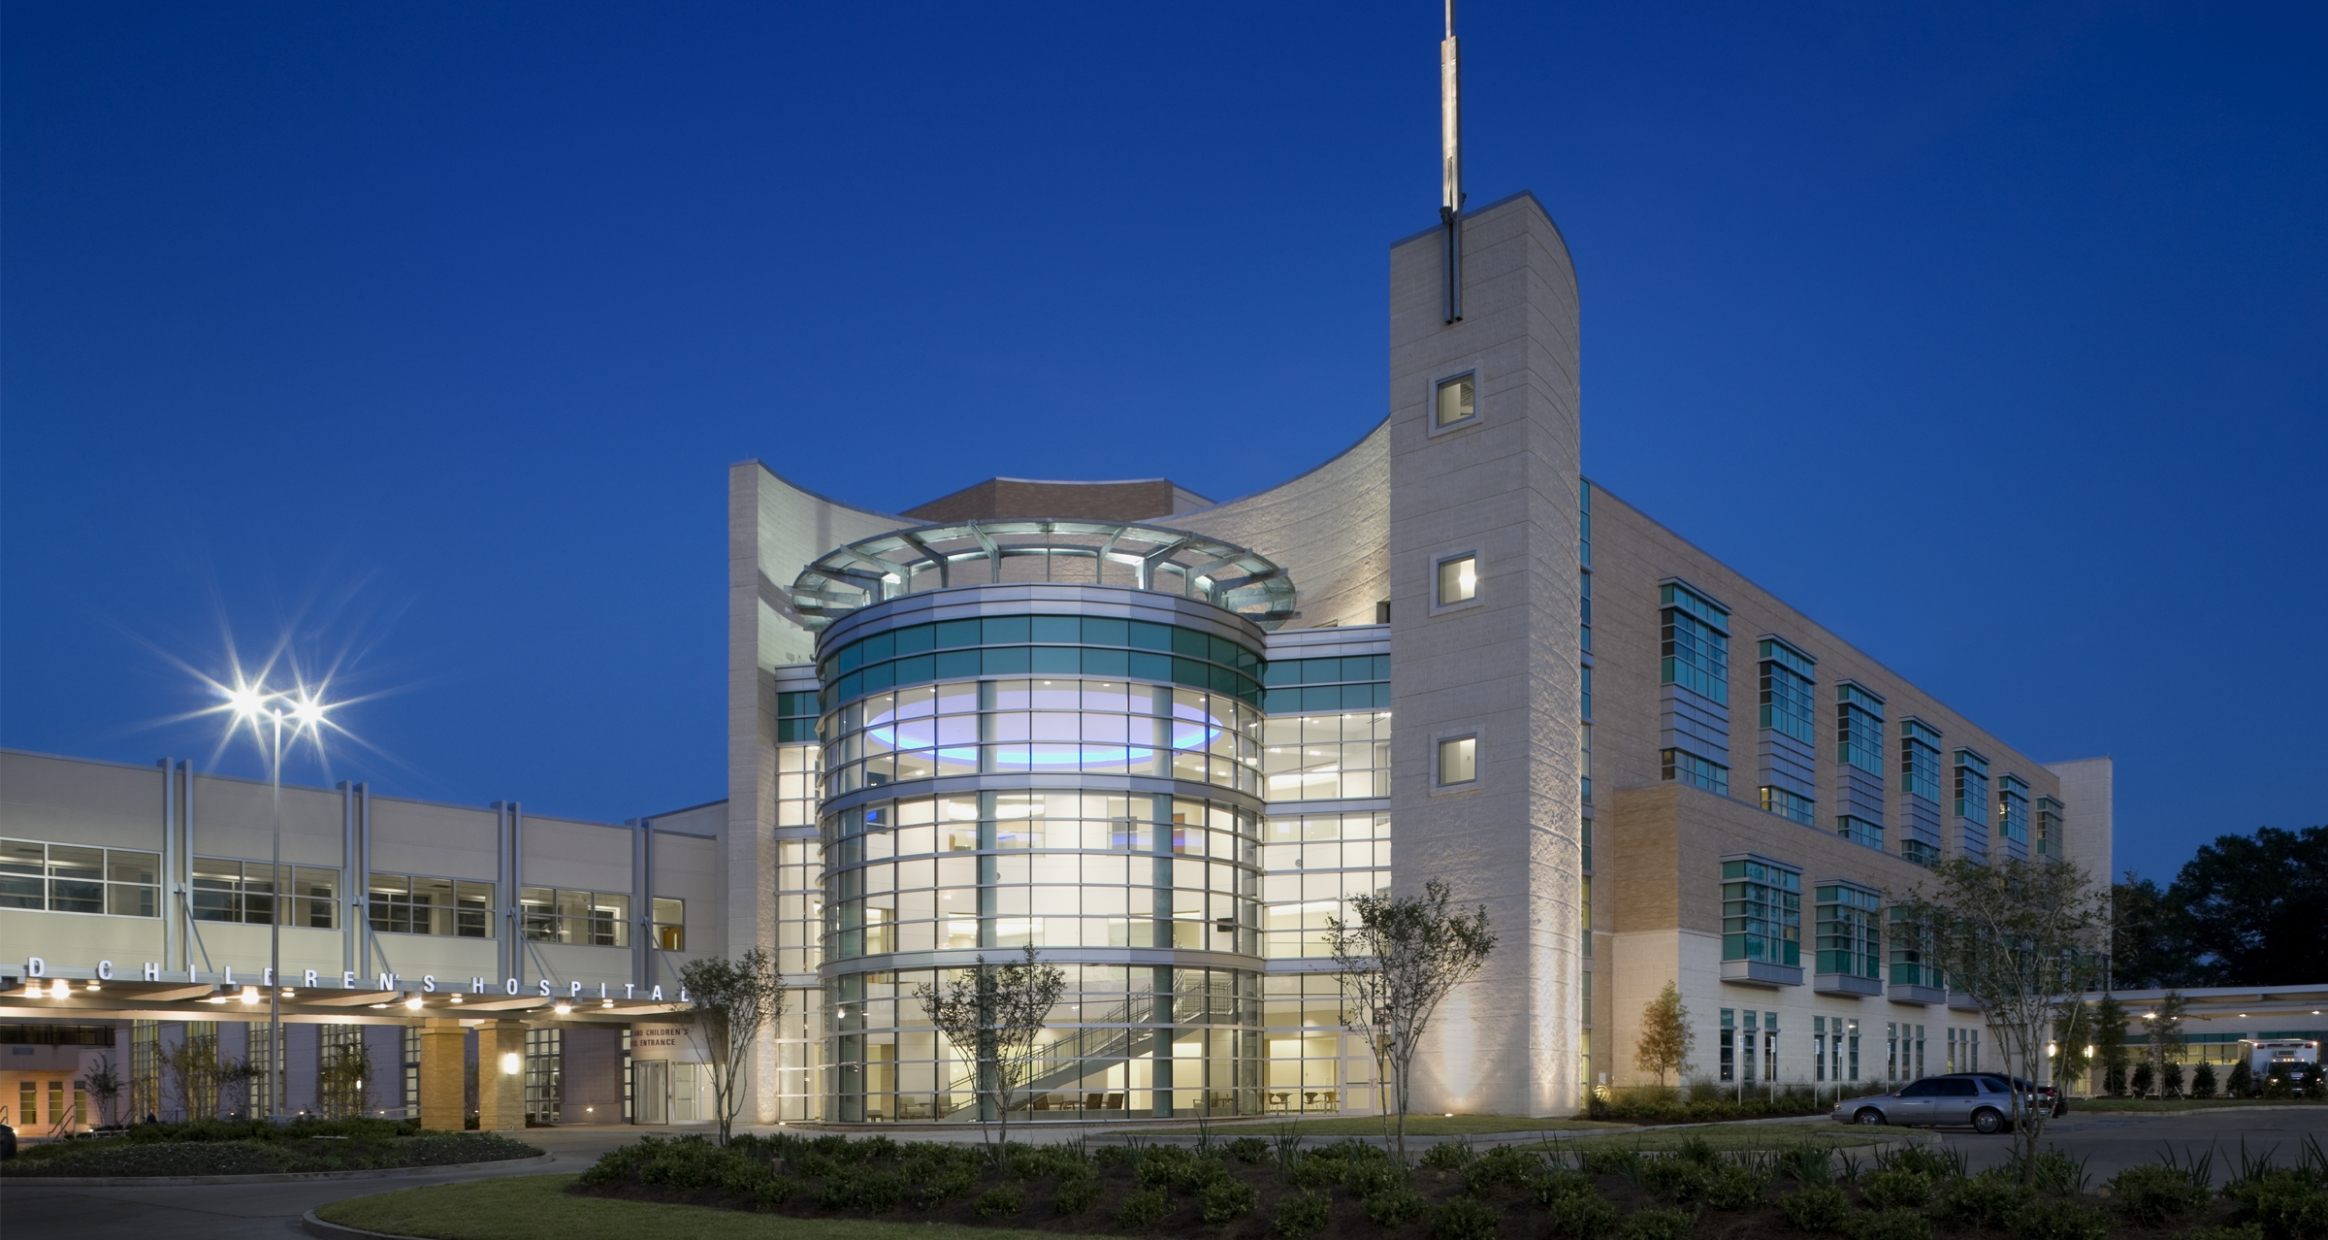 St. Frances Cabrini Women and Children's Hospital entrance at Dusk